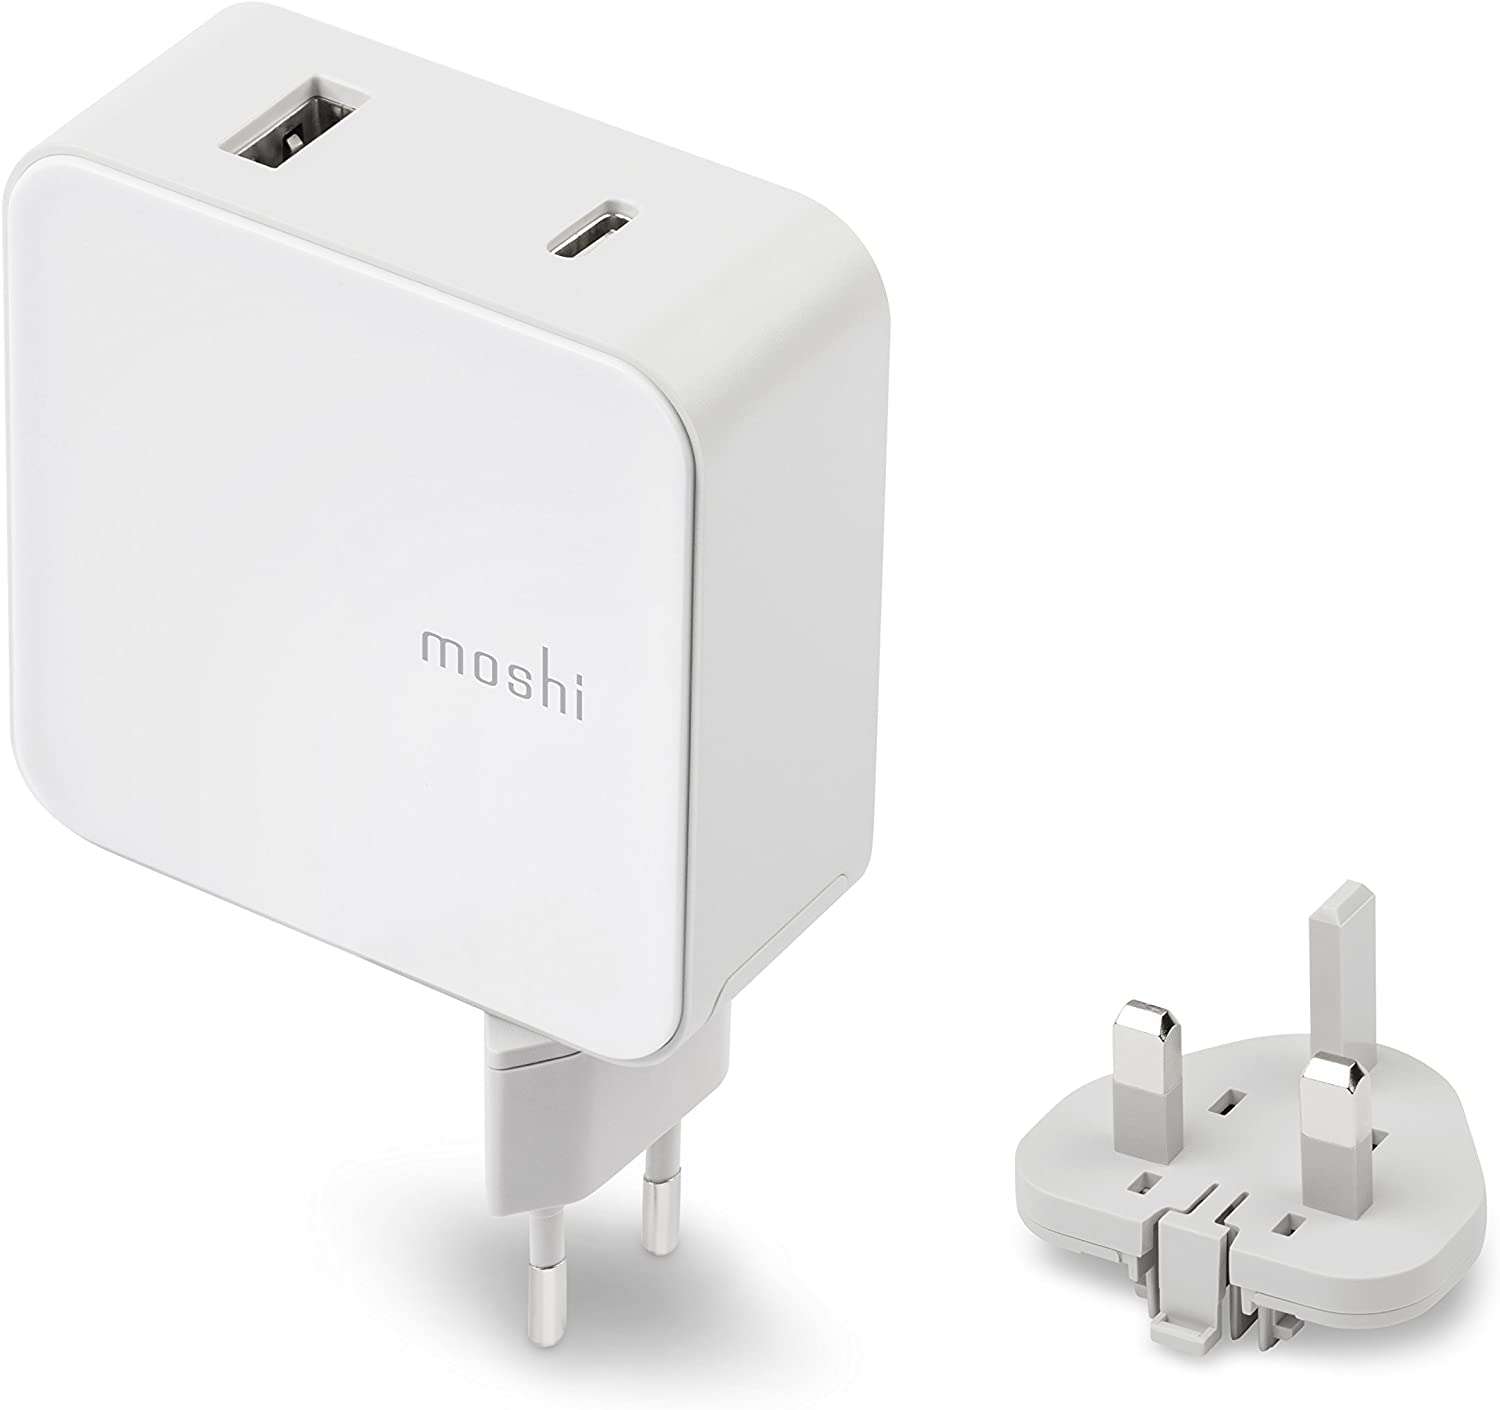 Moshi ProGeo USB-C Wall Charger Review